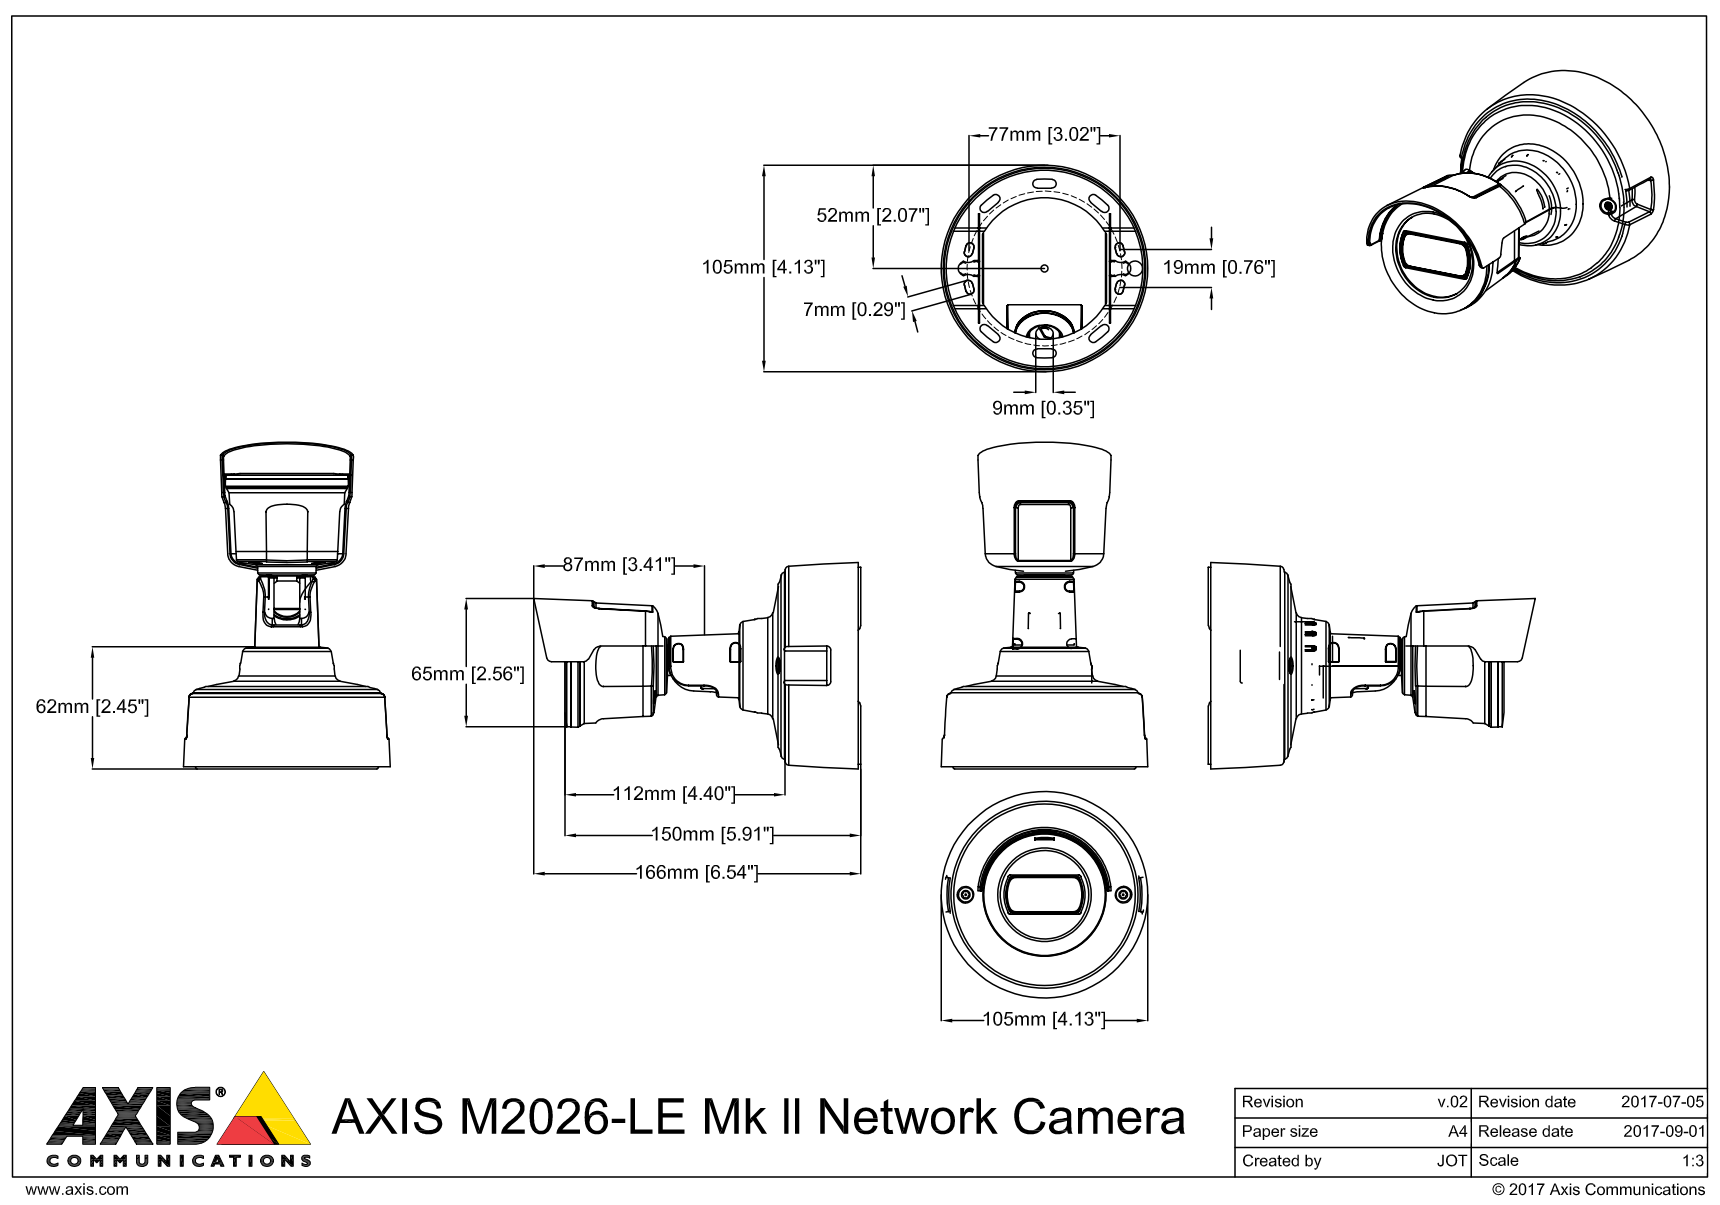 Axis M2026-LE Dimensions